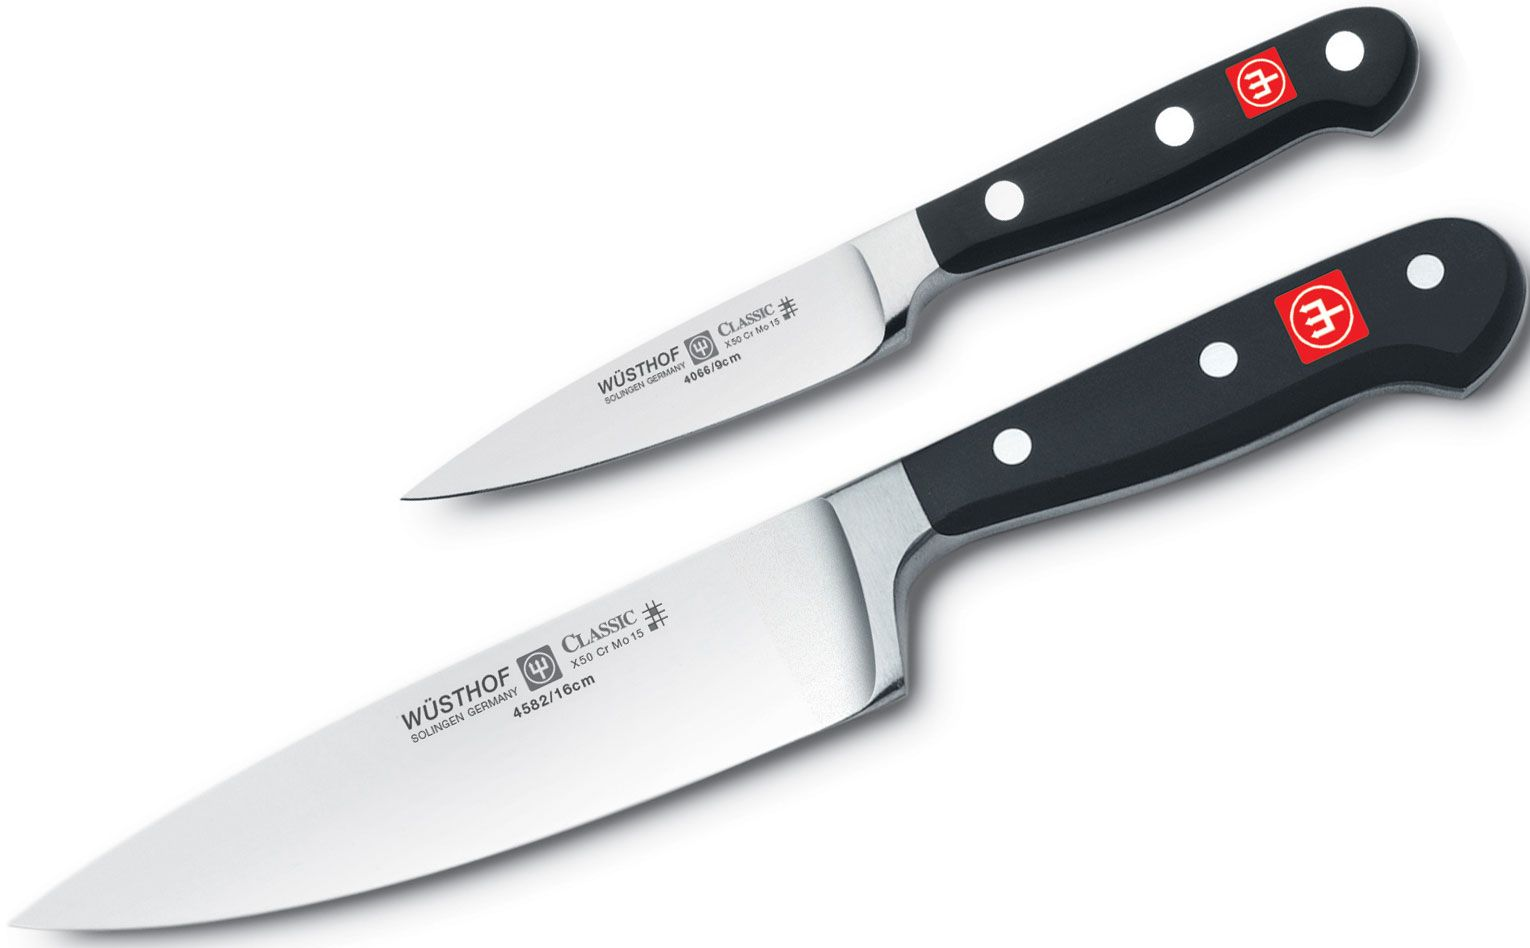 Wusthof Classic 2 Piece Prep Set, 6 inch Chef's Knife and 3.5 inch Paring Knife